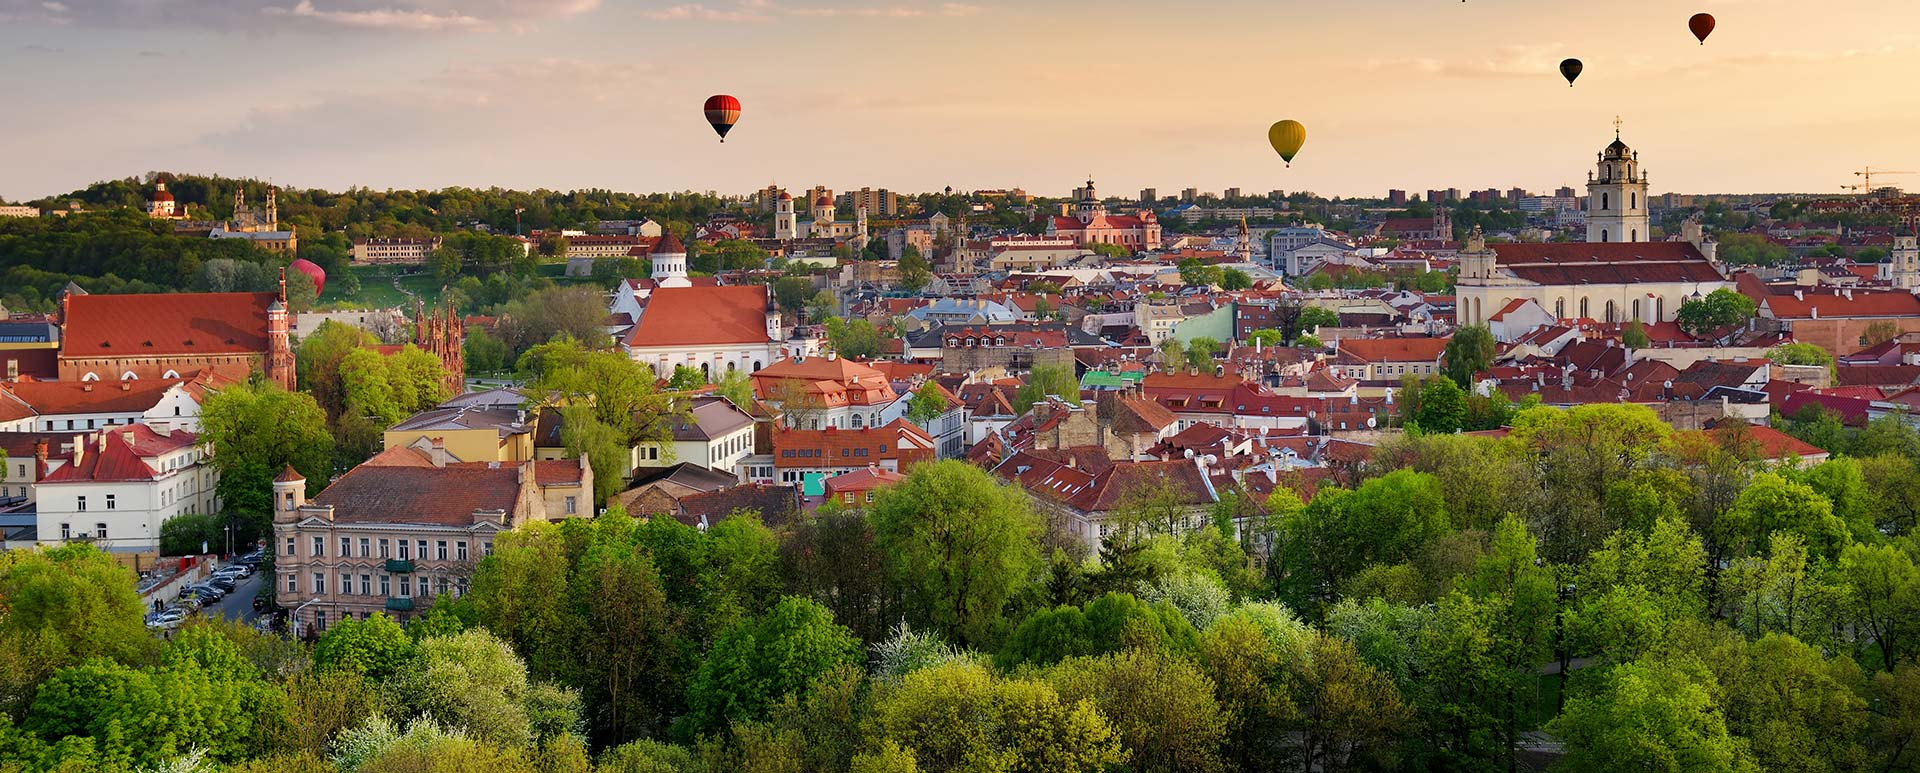 Discounted flight tickets to Lithuania - IFlyFirstClass